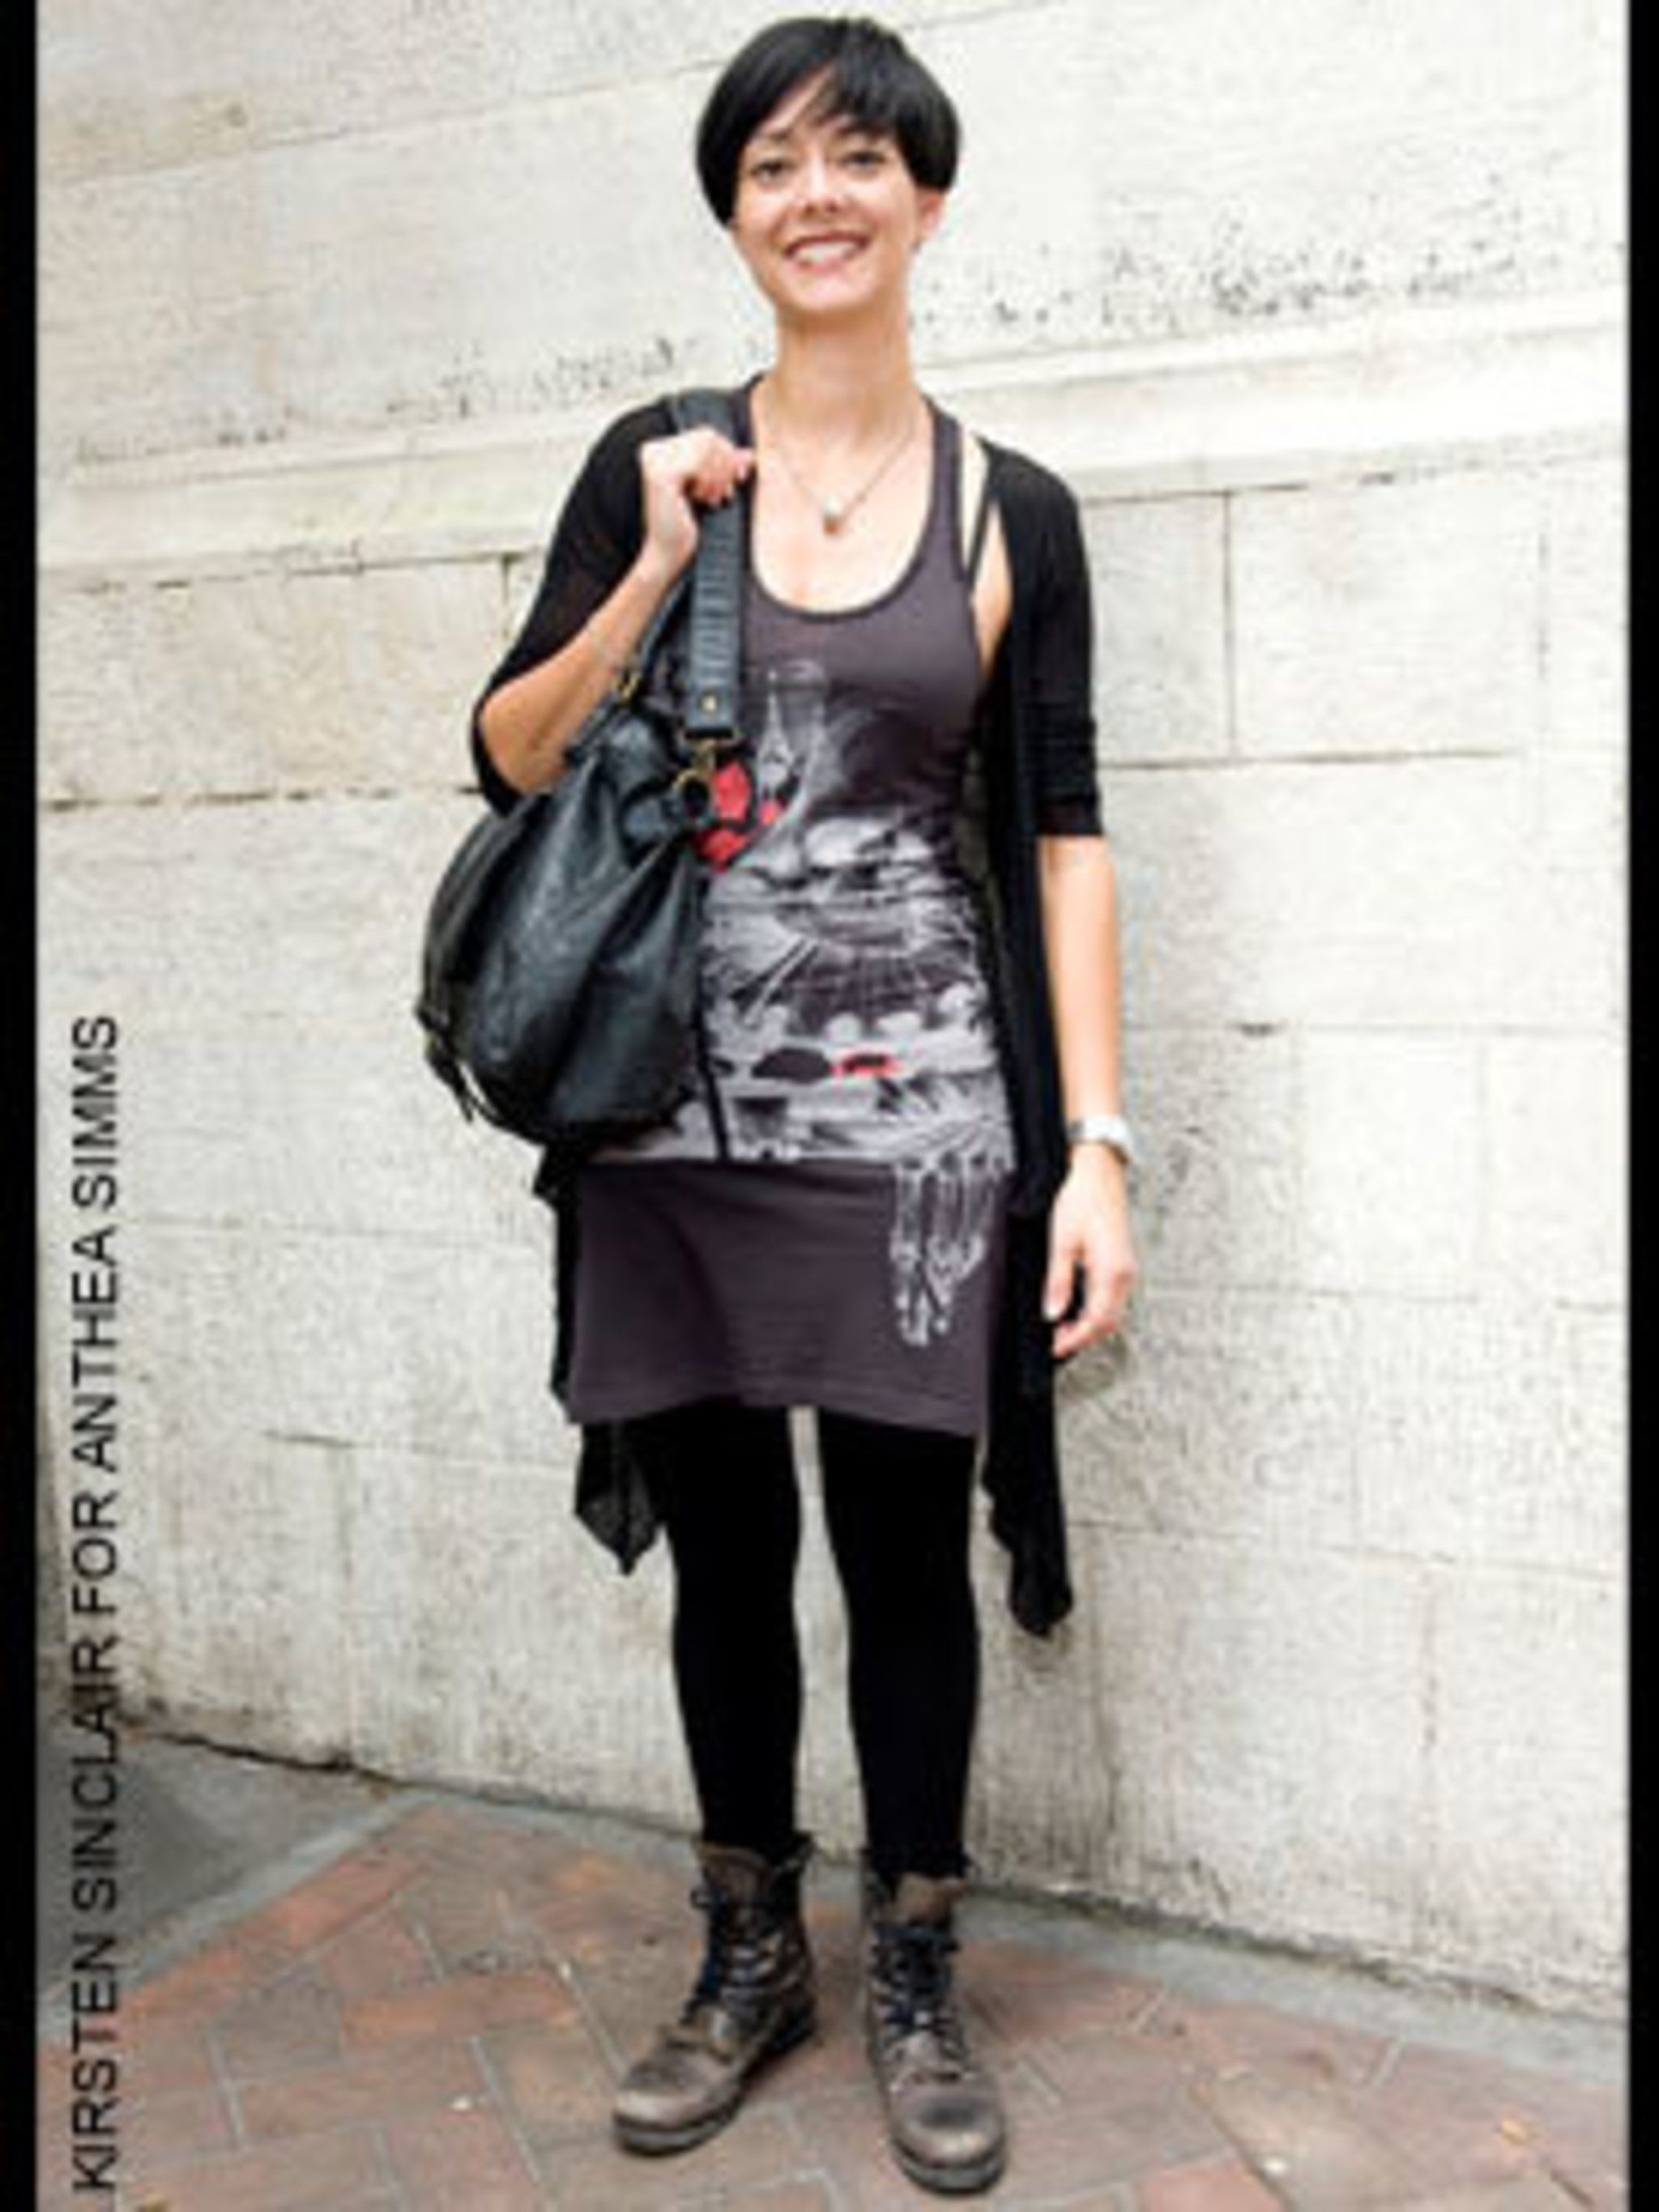 <p>Katherine a Hair stylist from london wearing a cardigan from Camden, vest dress from all saints, bag from Jolie Moie and boots from All Saints</p>